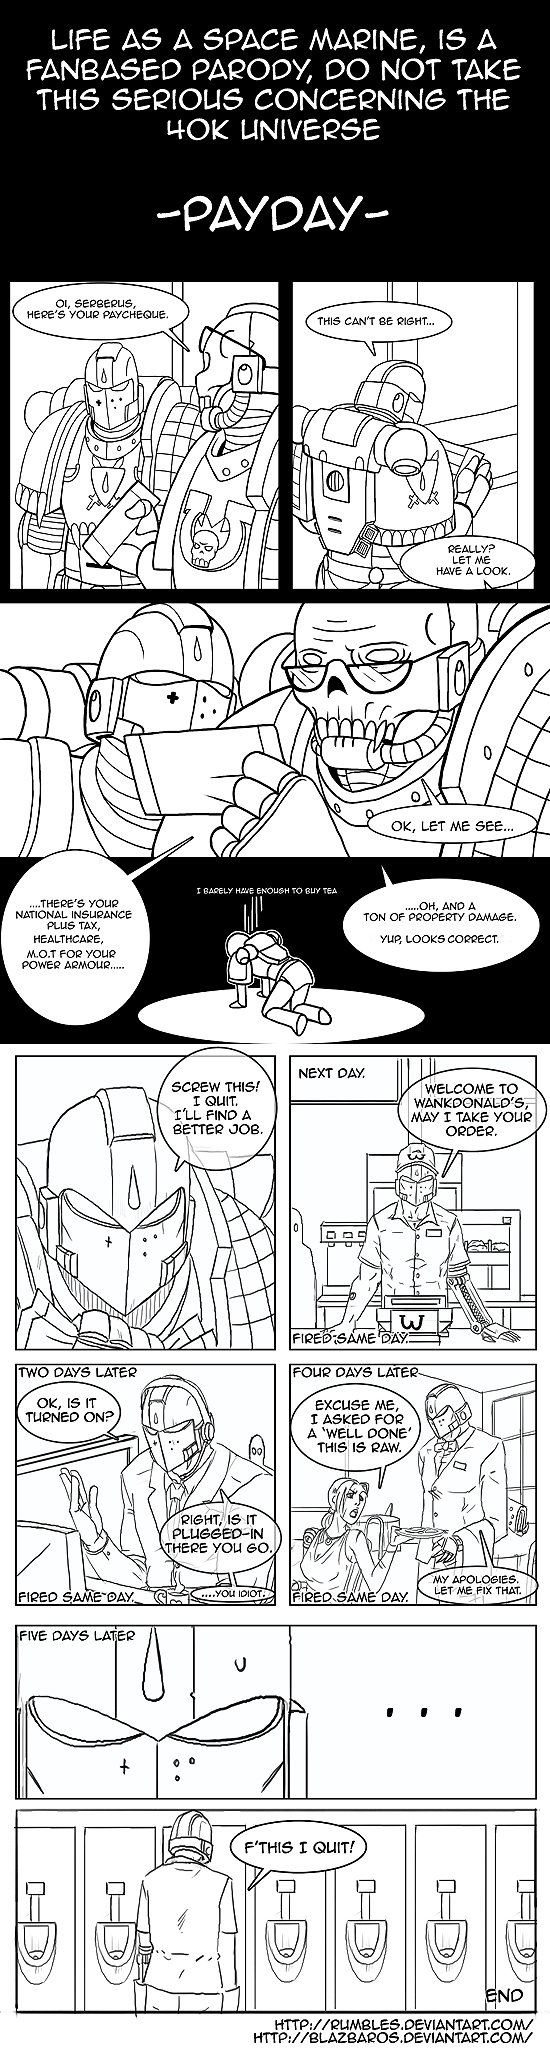 Life as a Space Marine - Payday by RedSkittlez-DA